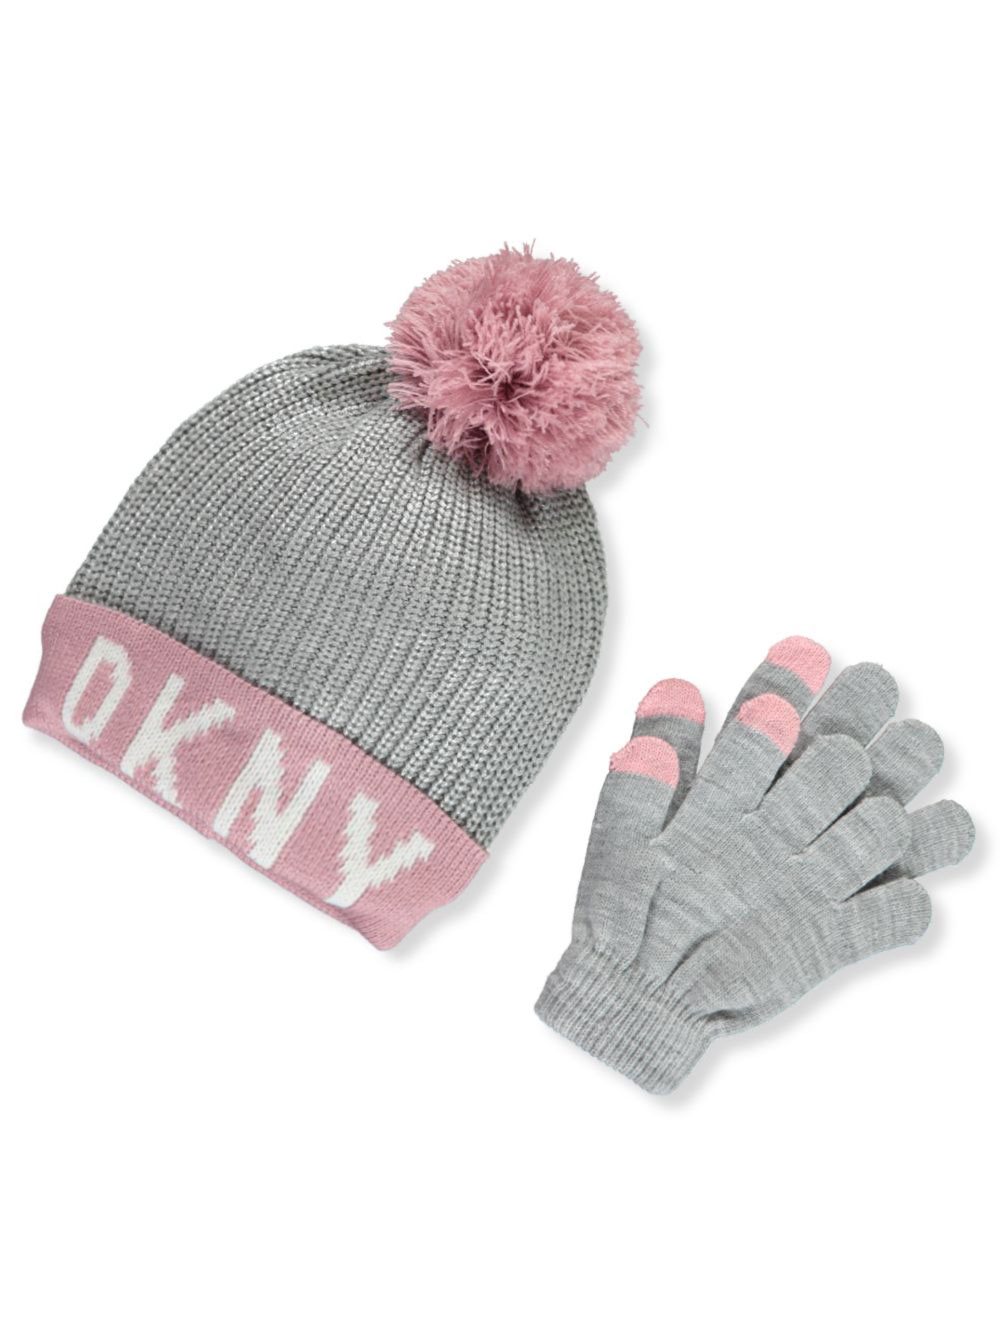 0d3e42ffd Girls' Knit Hat & Tech Touch Gloves Set by DKNY in charcoal gray and  gray/pink